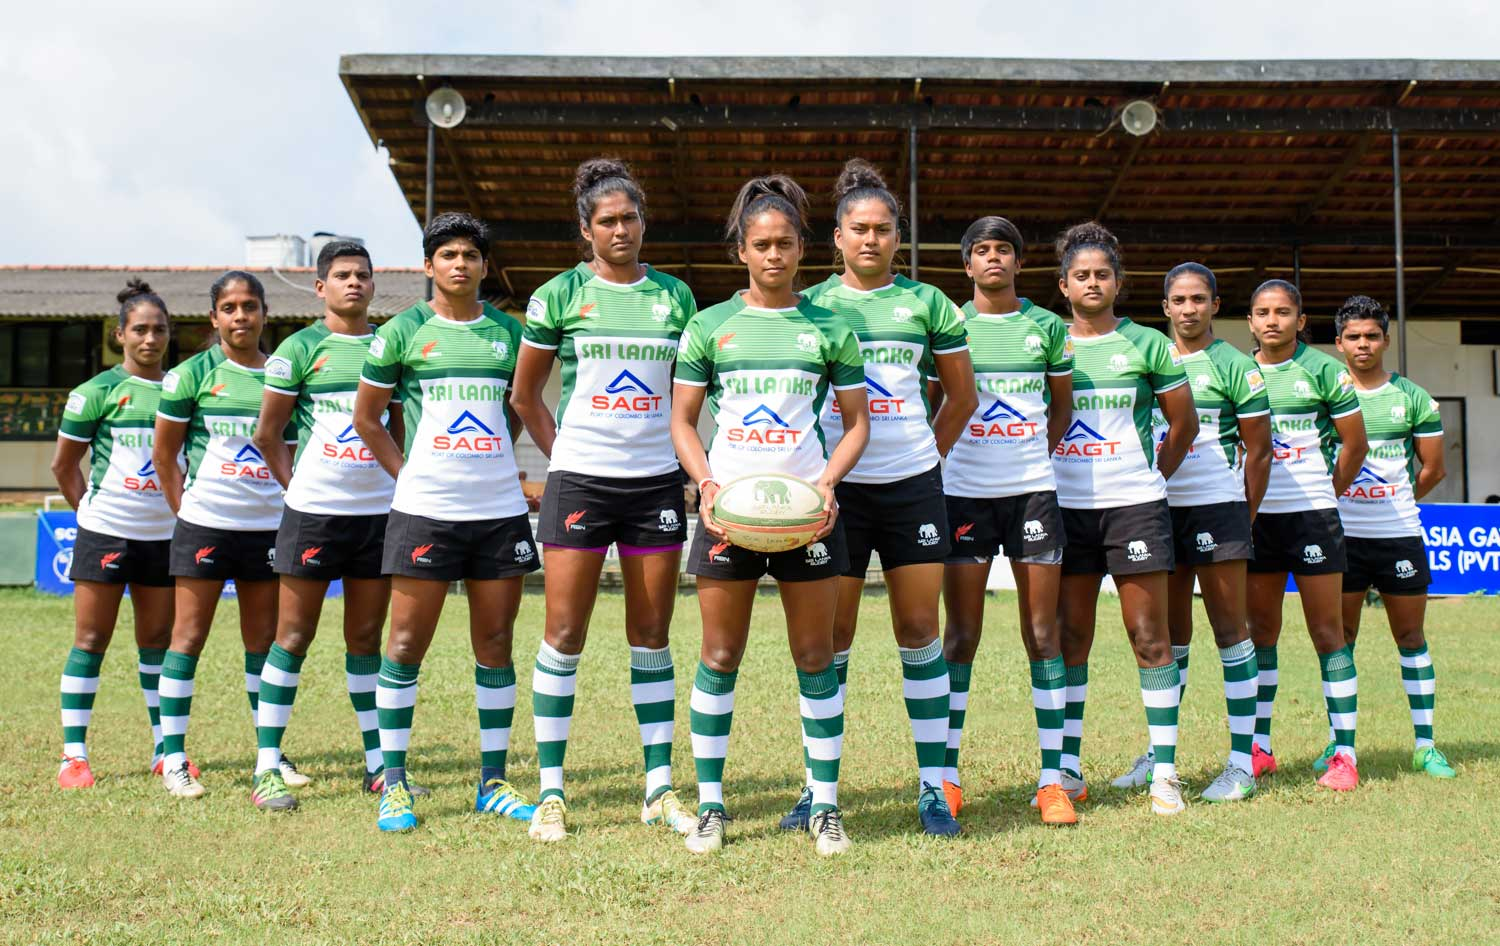 Sri Lanka Women's 7's team